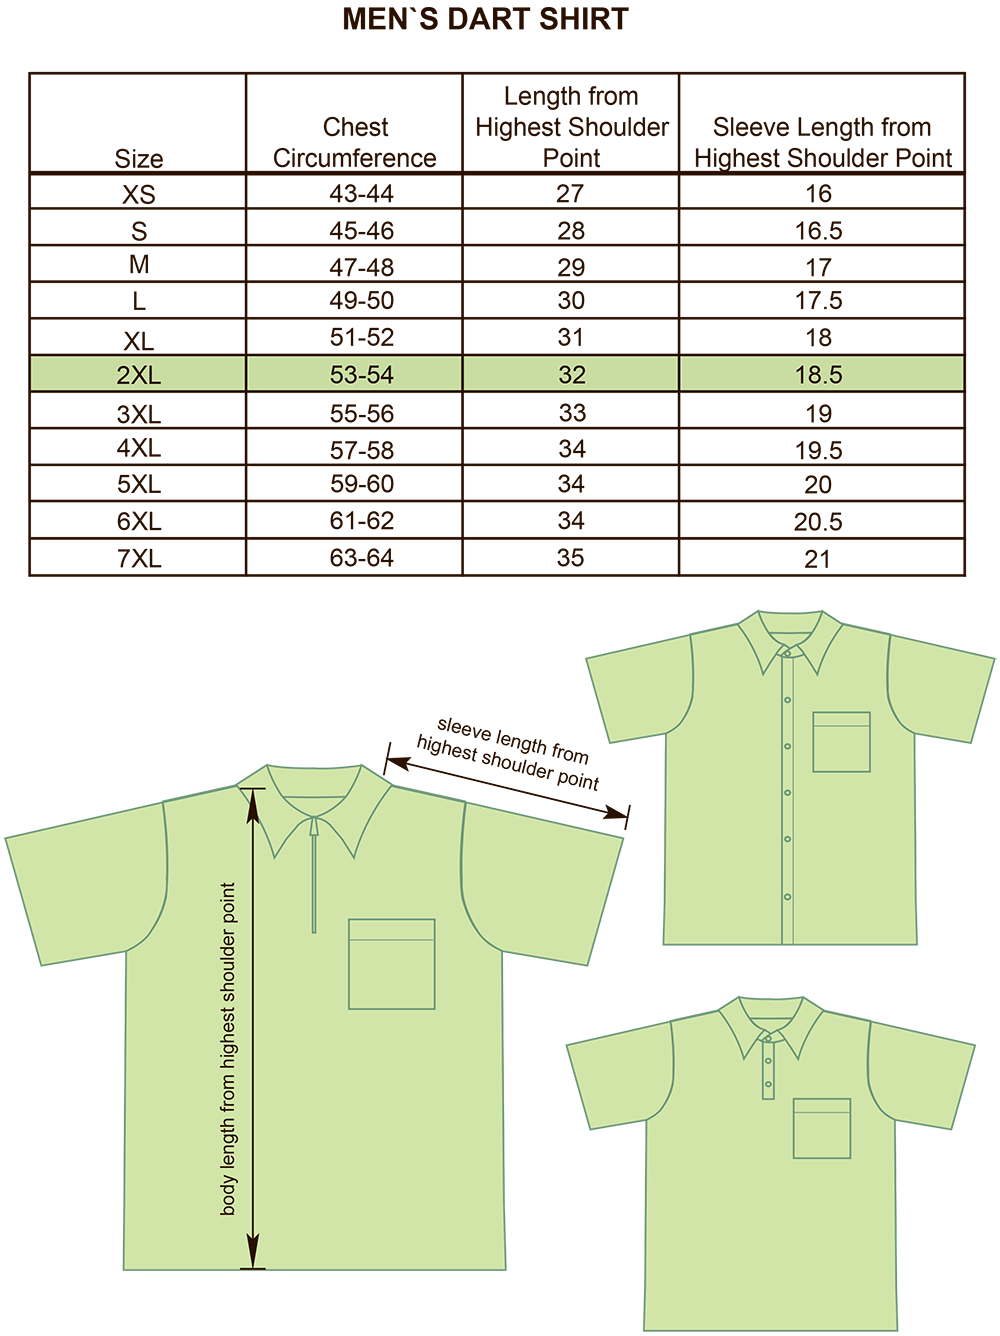 Mens Darts, Bowling and Billiards Shirt Size Chart Image